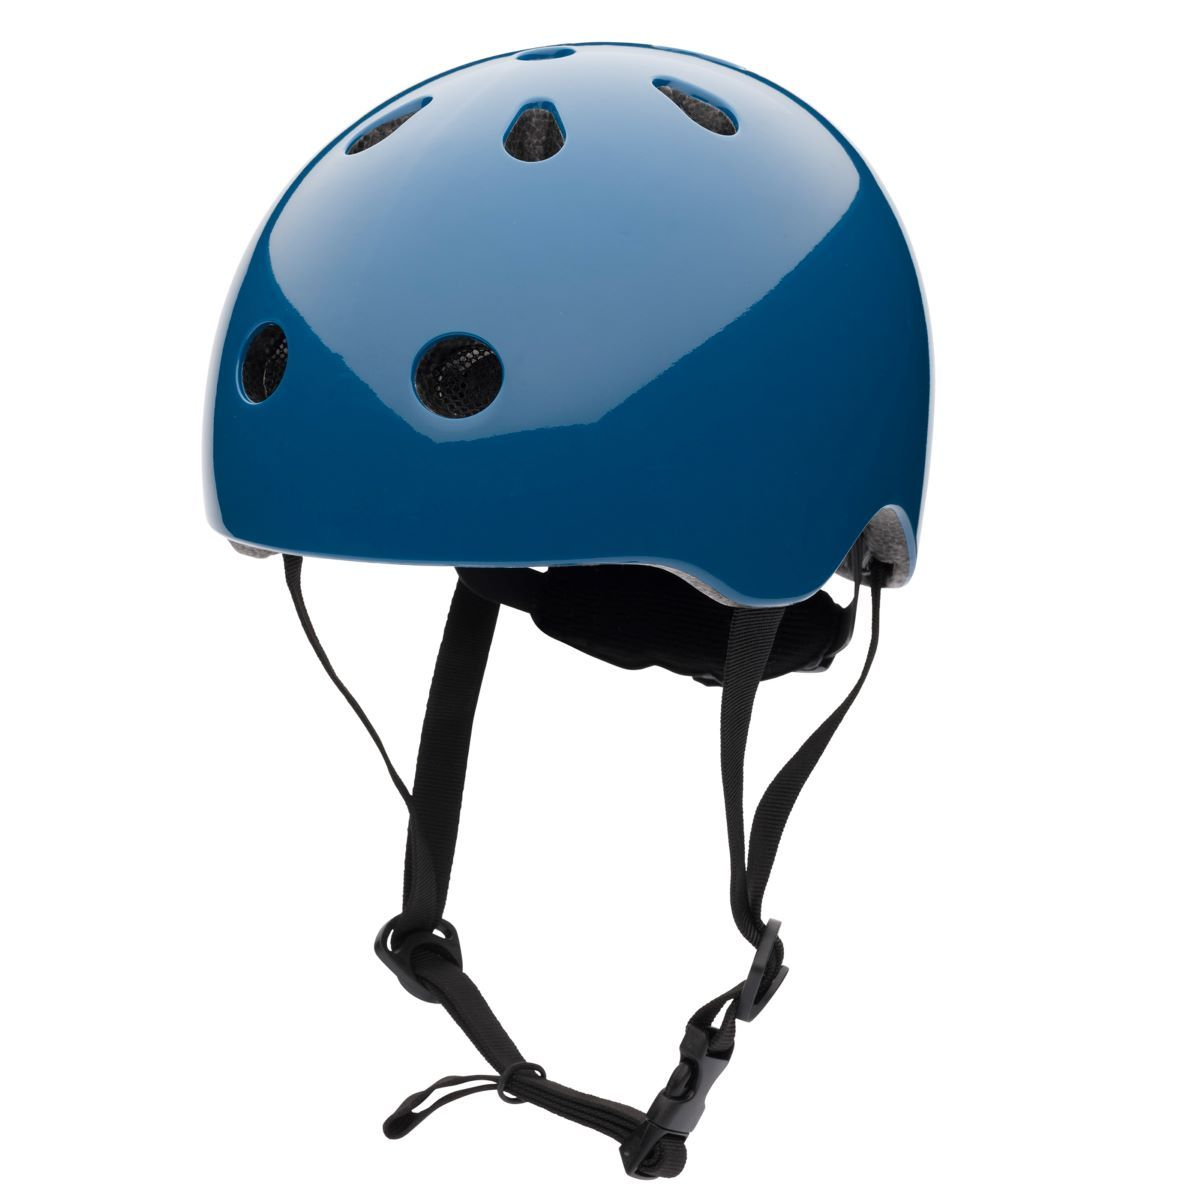 Trybike CoConuts Helmet in Blue - Extra Small